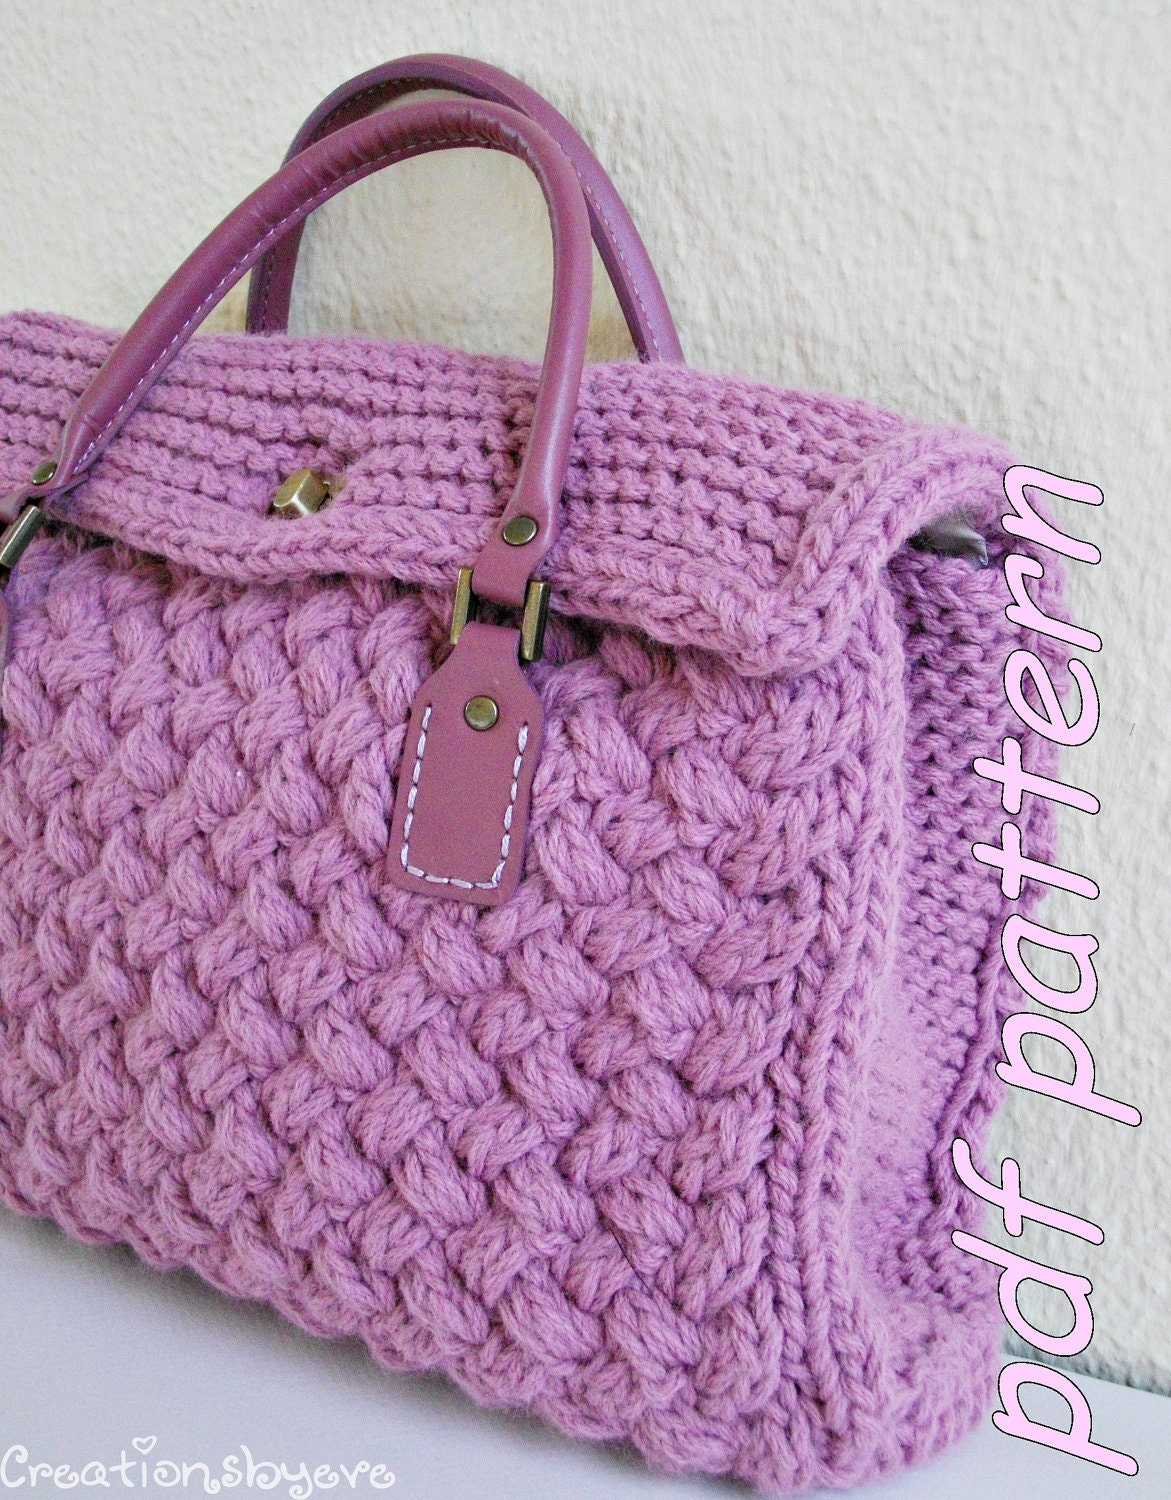 Stylish small textured hand-knit bag PDF by creationsbyeve